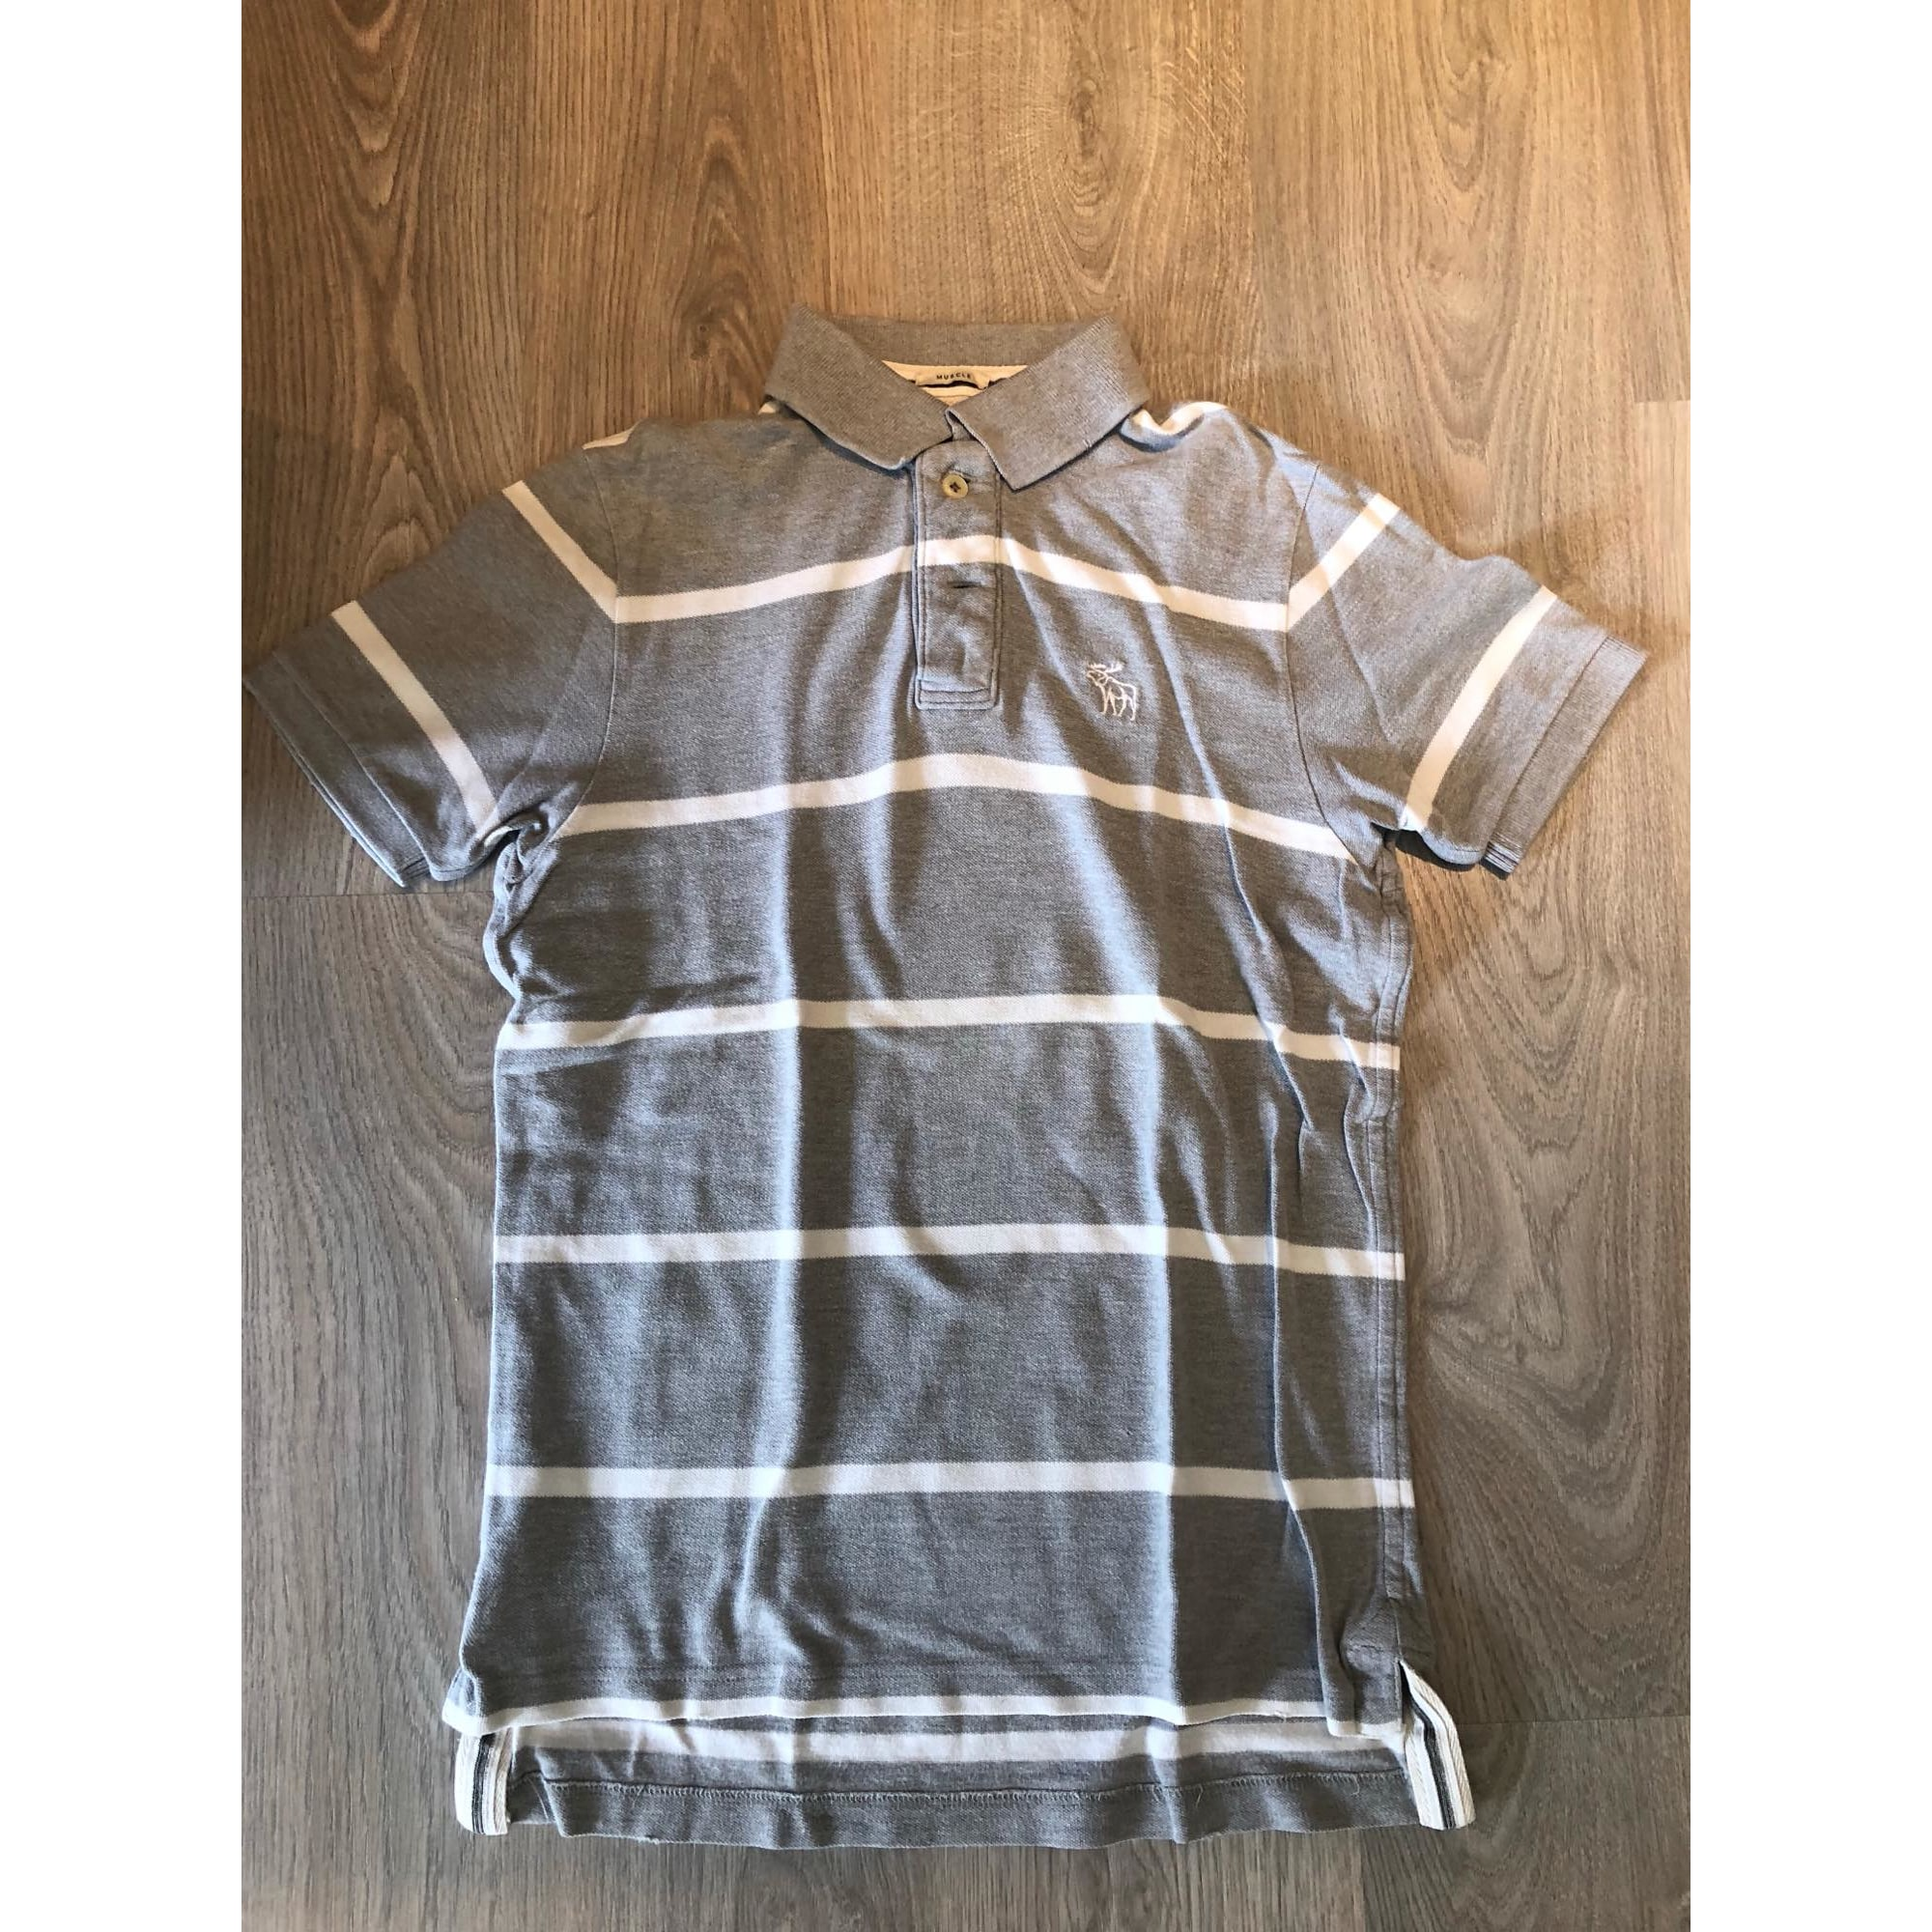 Polo ABERCROMBIE & FITCH Gris, anthracite